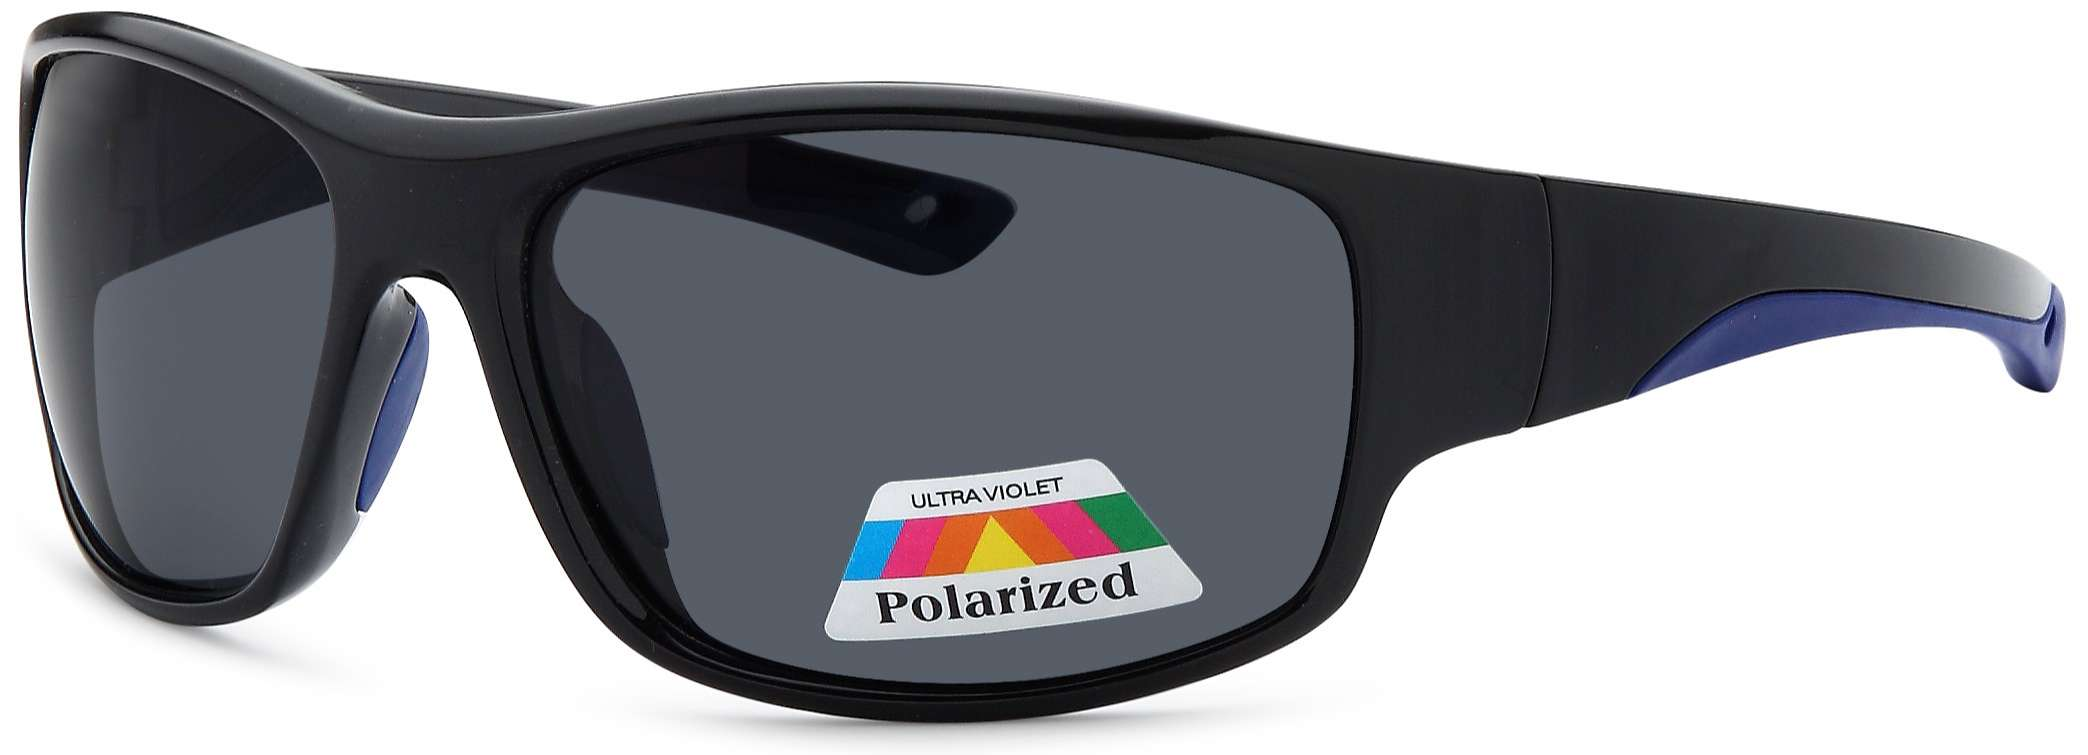 Black frame polarized sunglasses